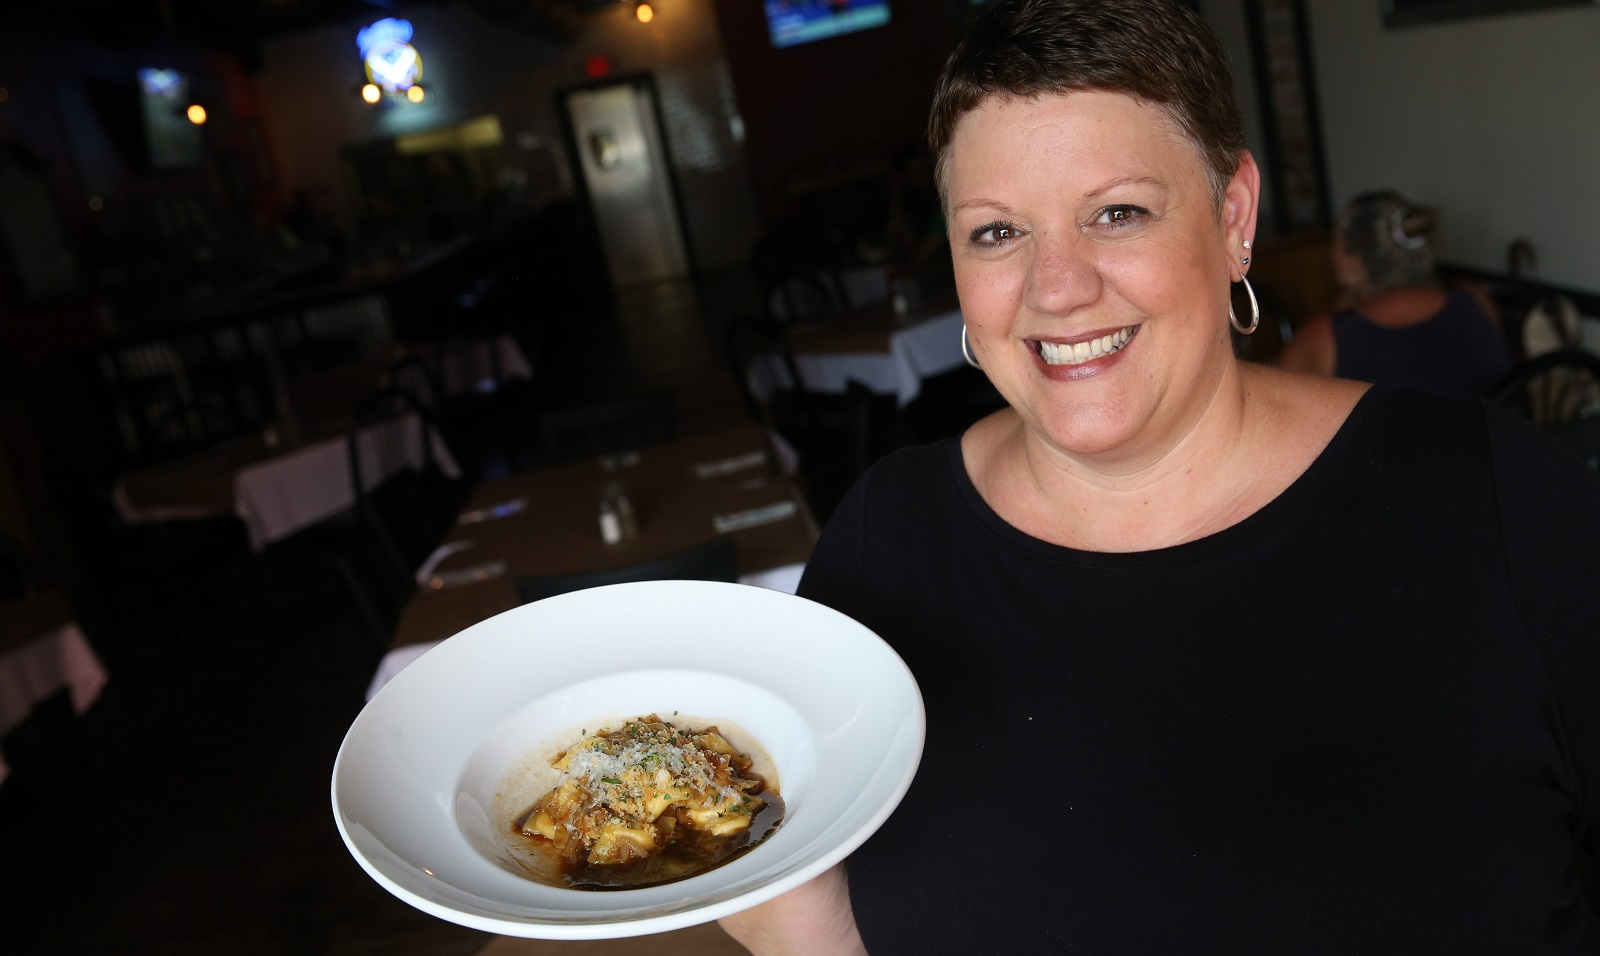 The Mess Hall server Sue Staniszewski – now the owner – presents the homemade french onion raviolettis. (Sharon Cantillon/Buffalo News)